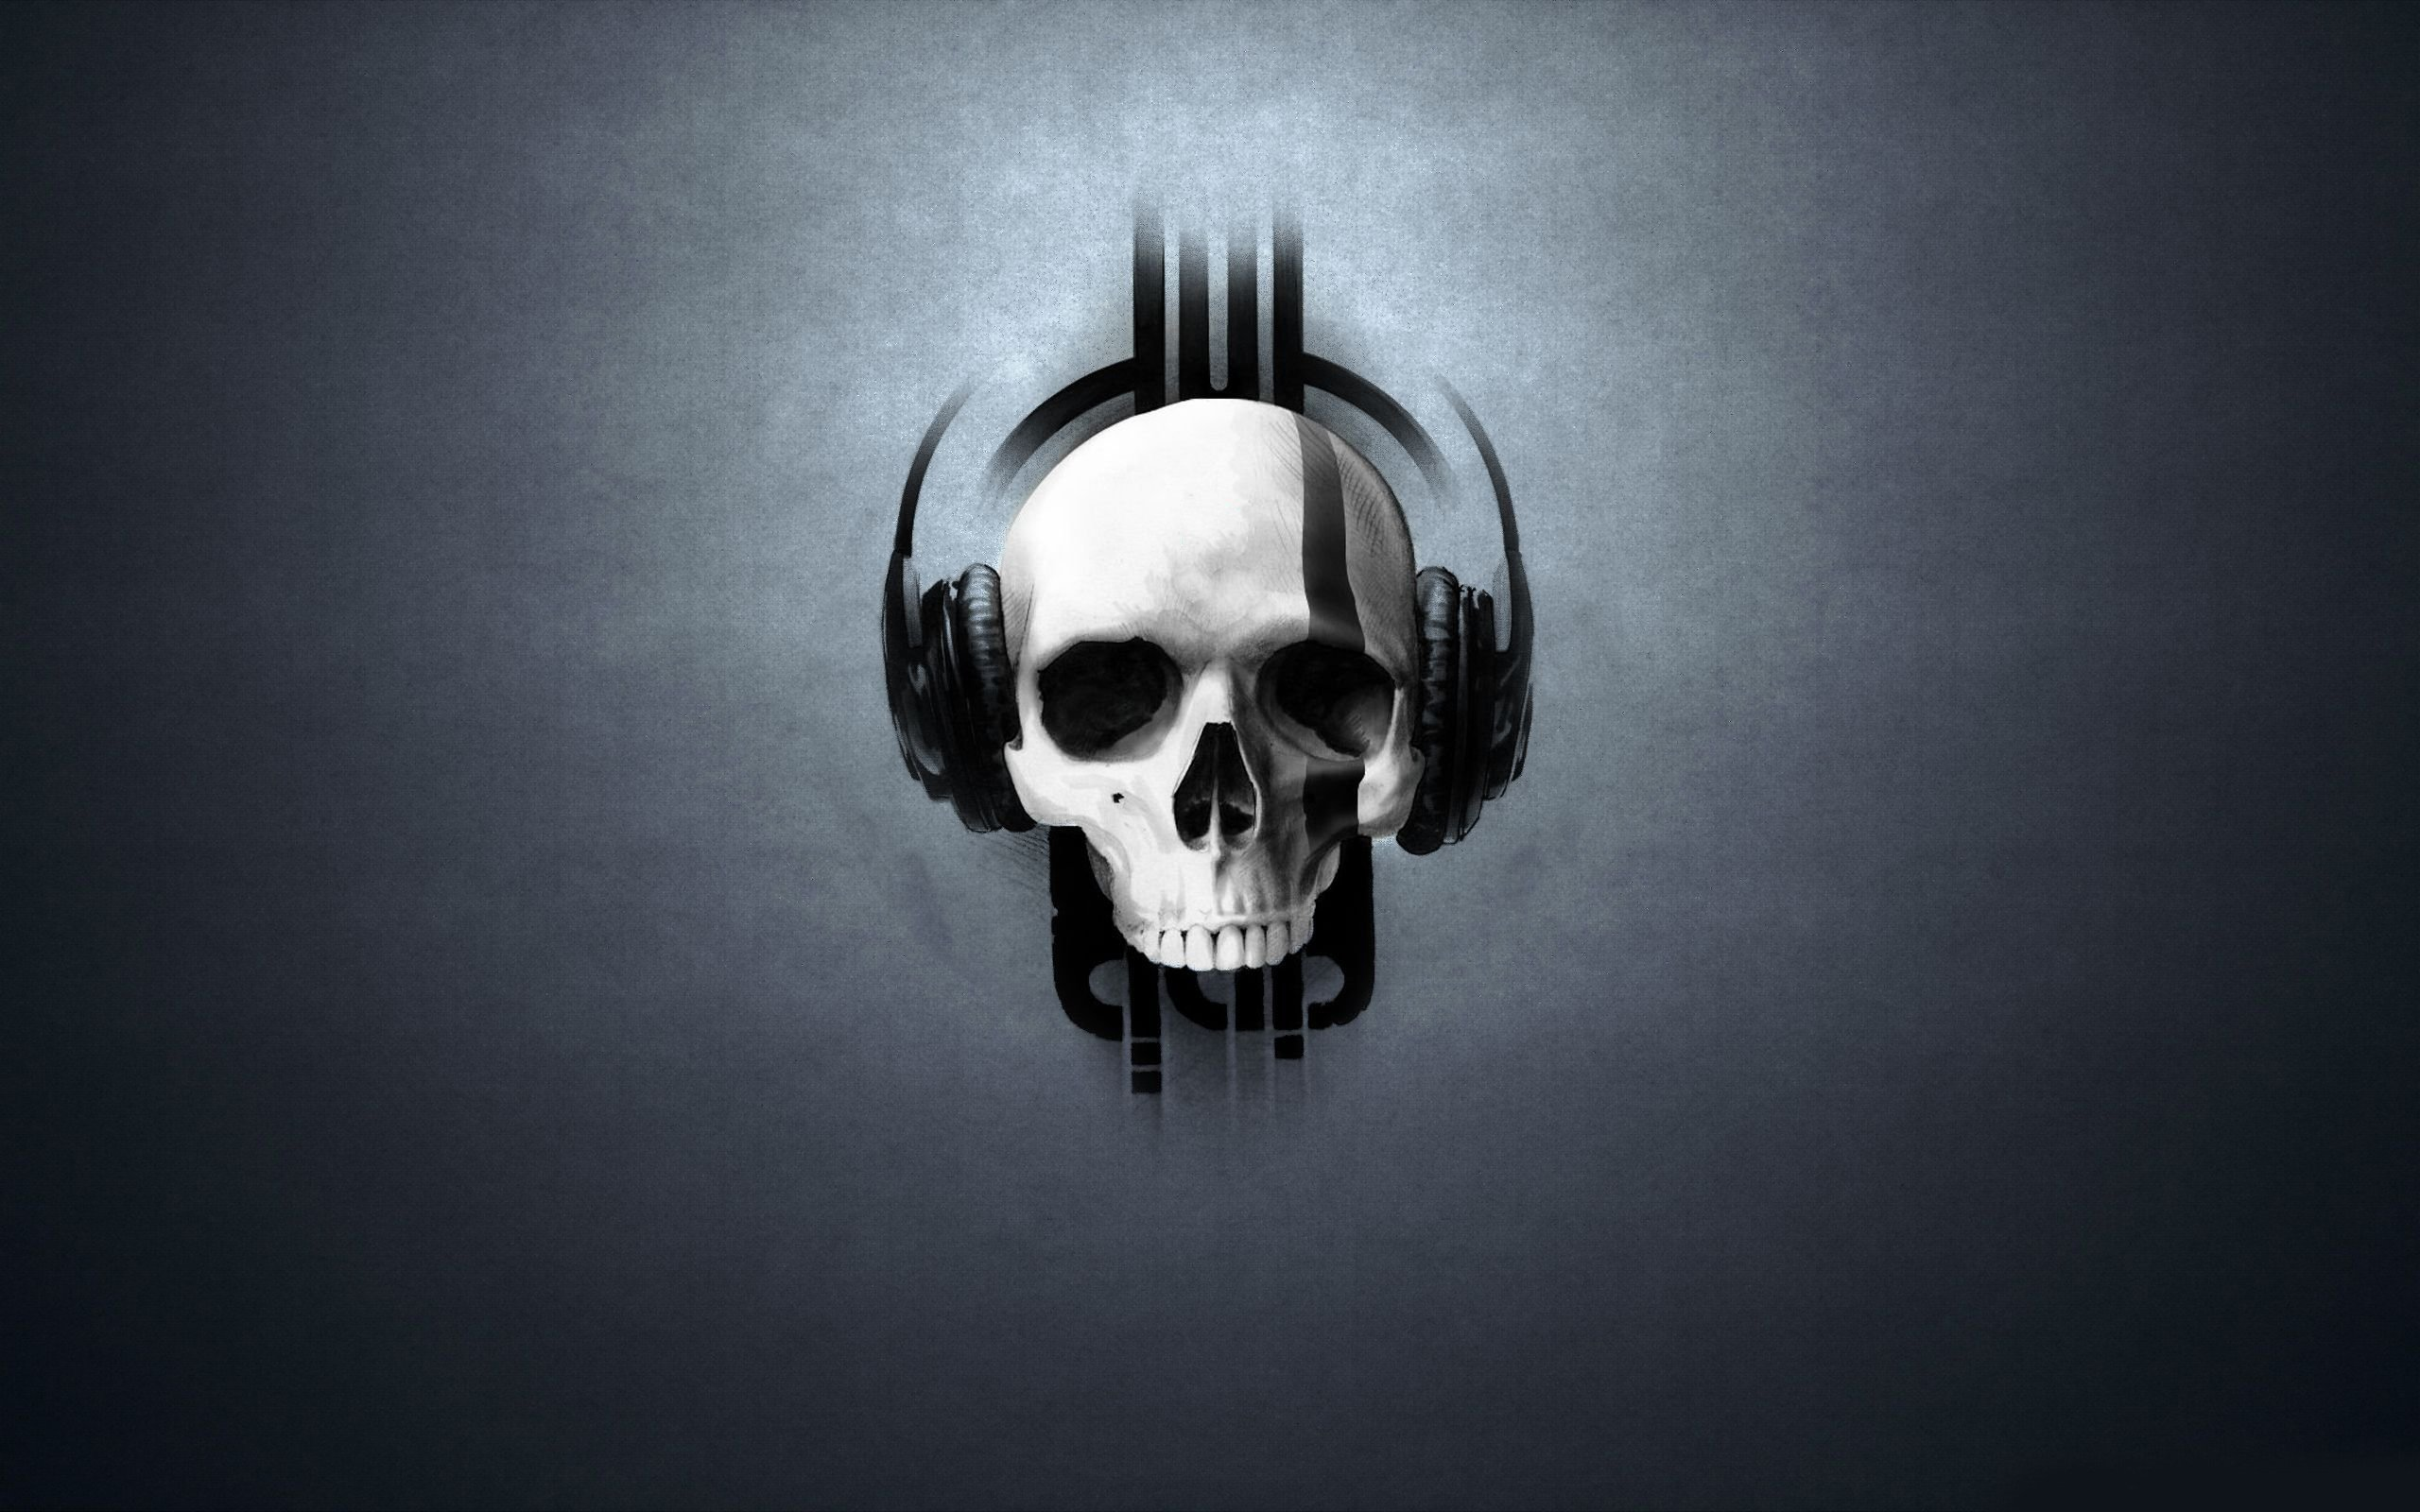 Skull Wallpaper Hd Images amp Pictures   Becuo 2560x1600